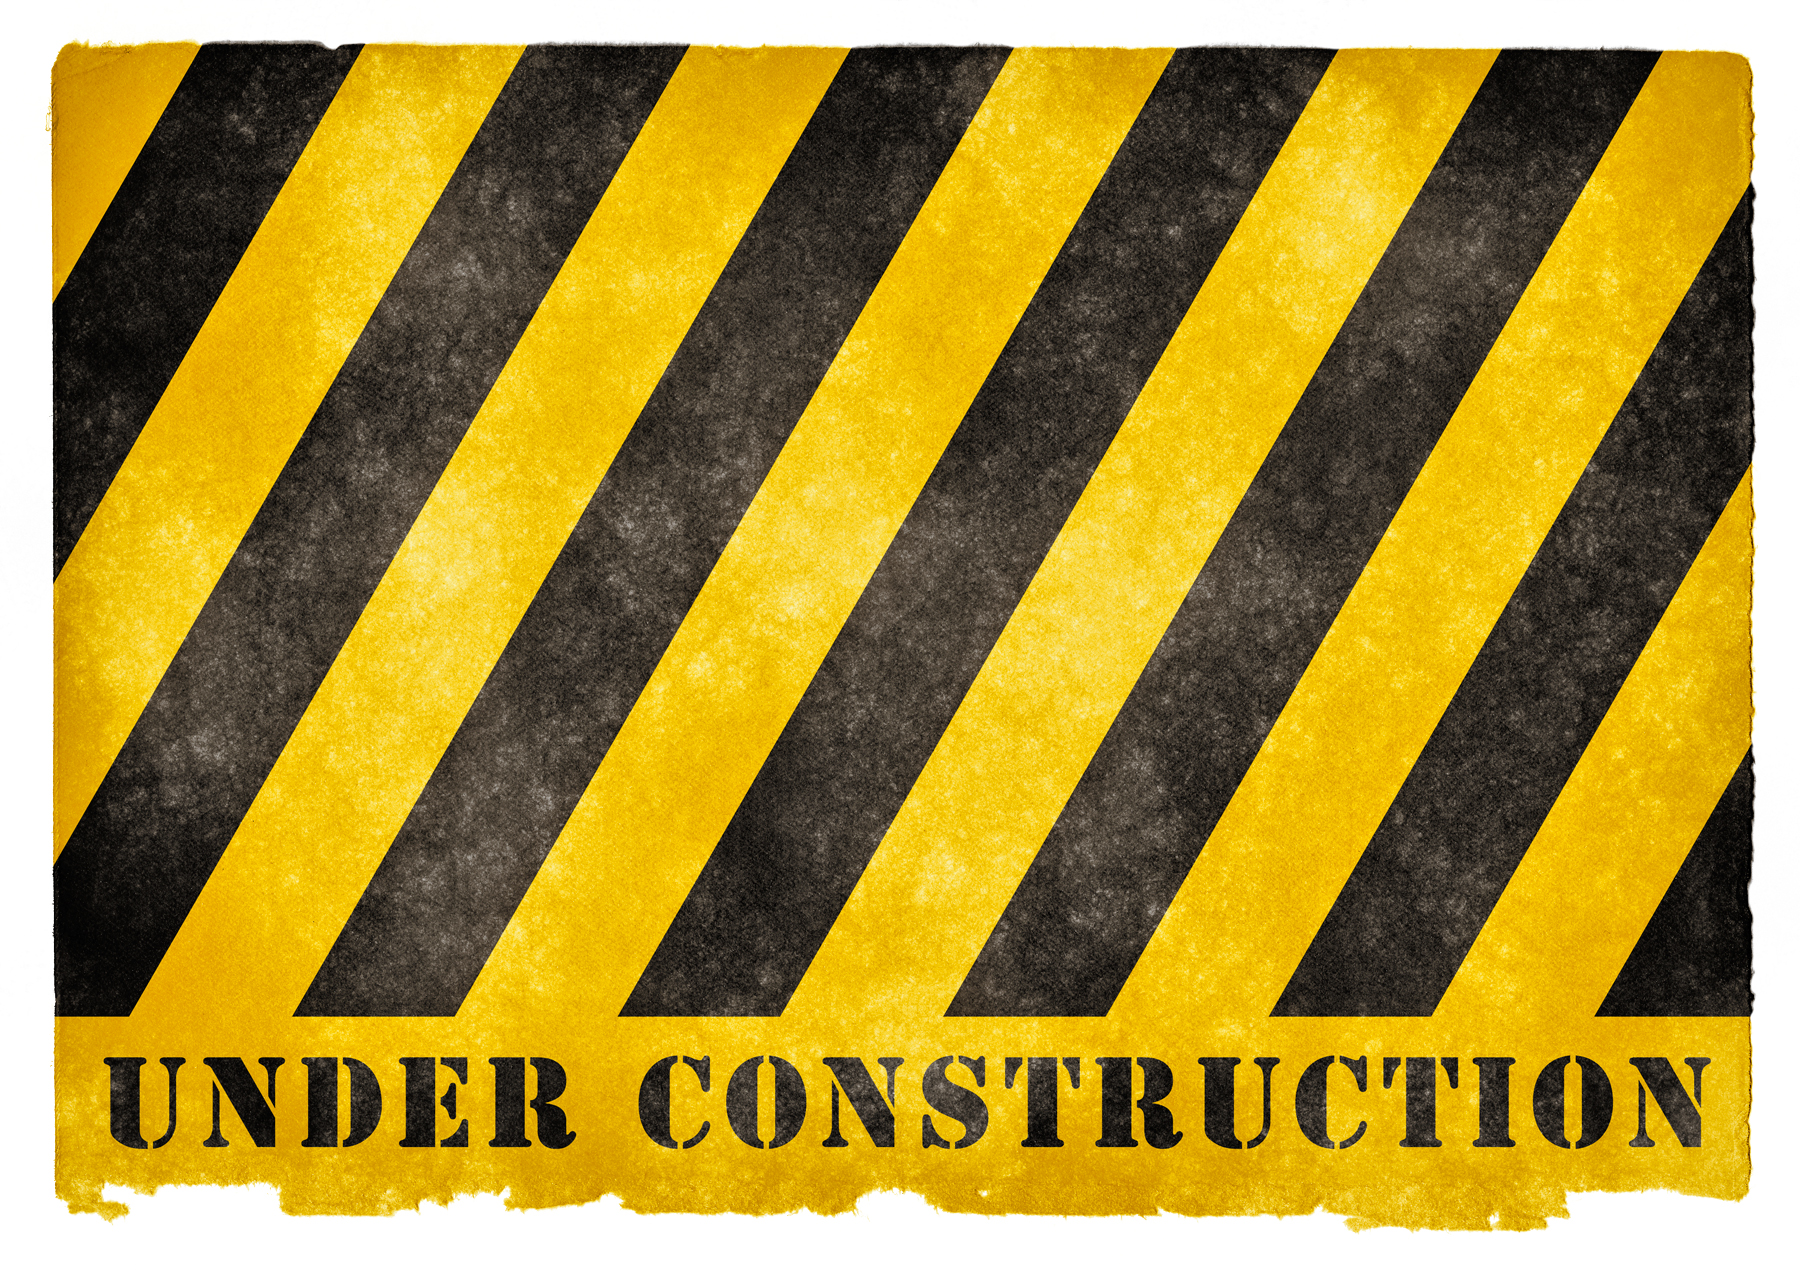 Under construction grunge sign photo